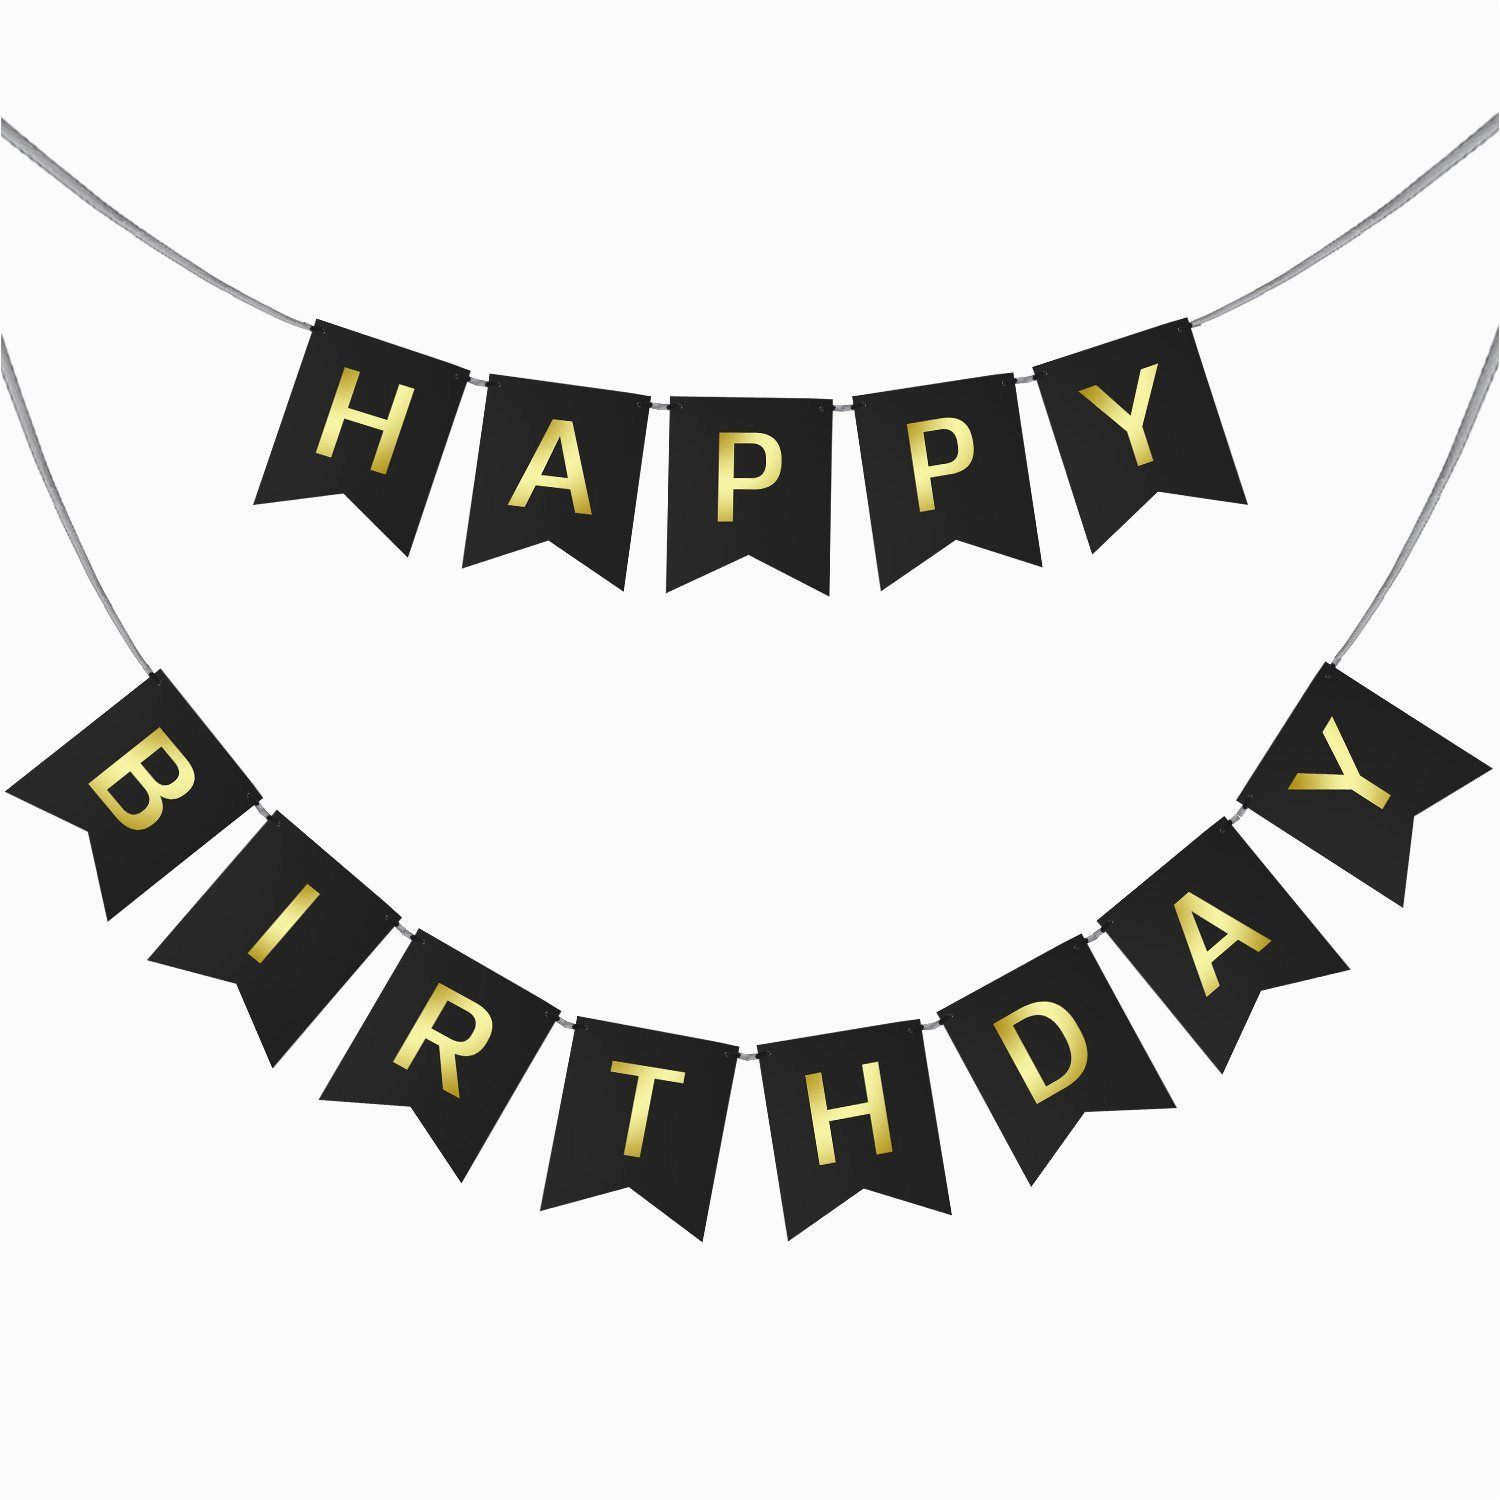 happy birthday swallowtail bunting banner for party decoration black background gold foiled letters classy luxurious decorations by ahaya 2